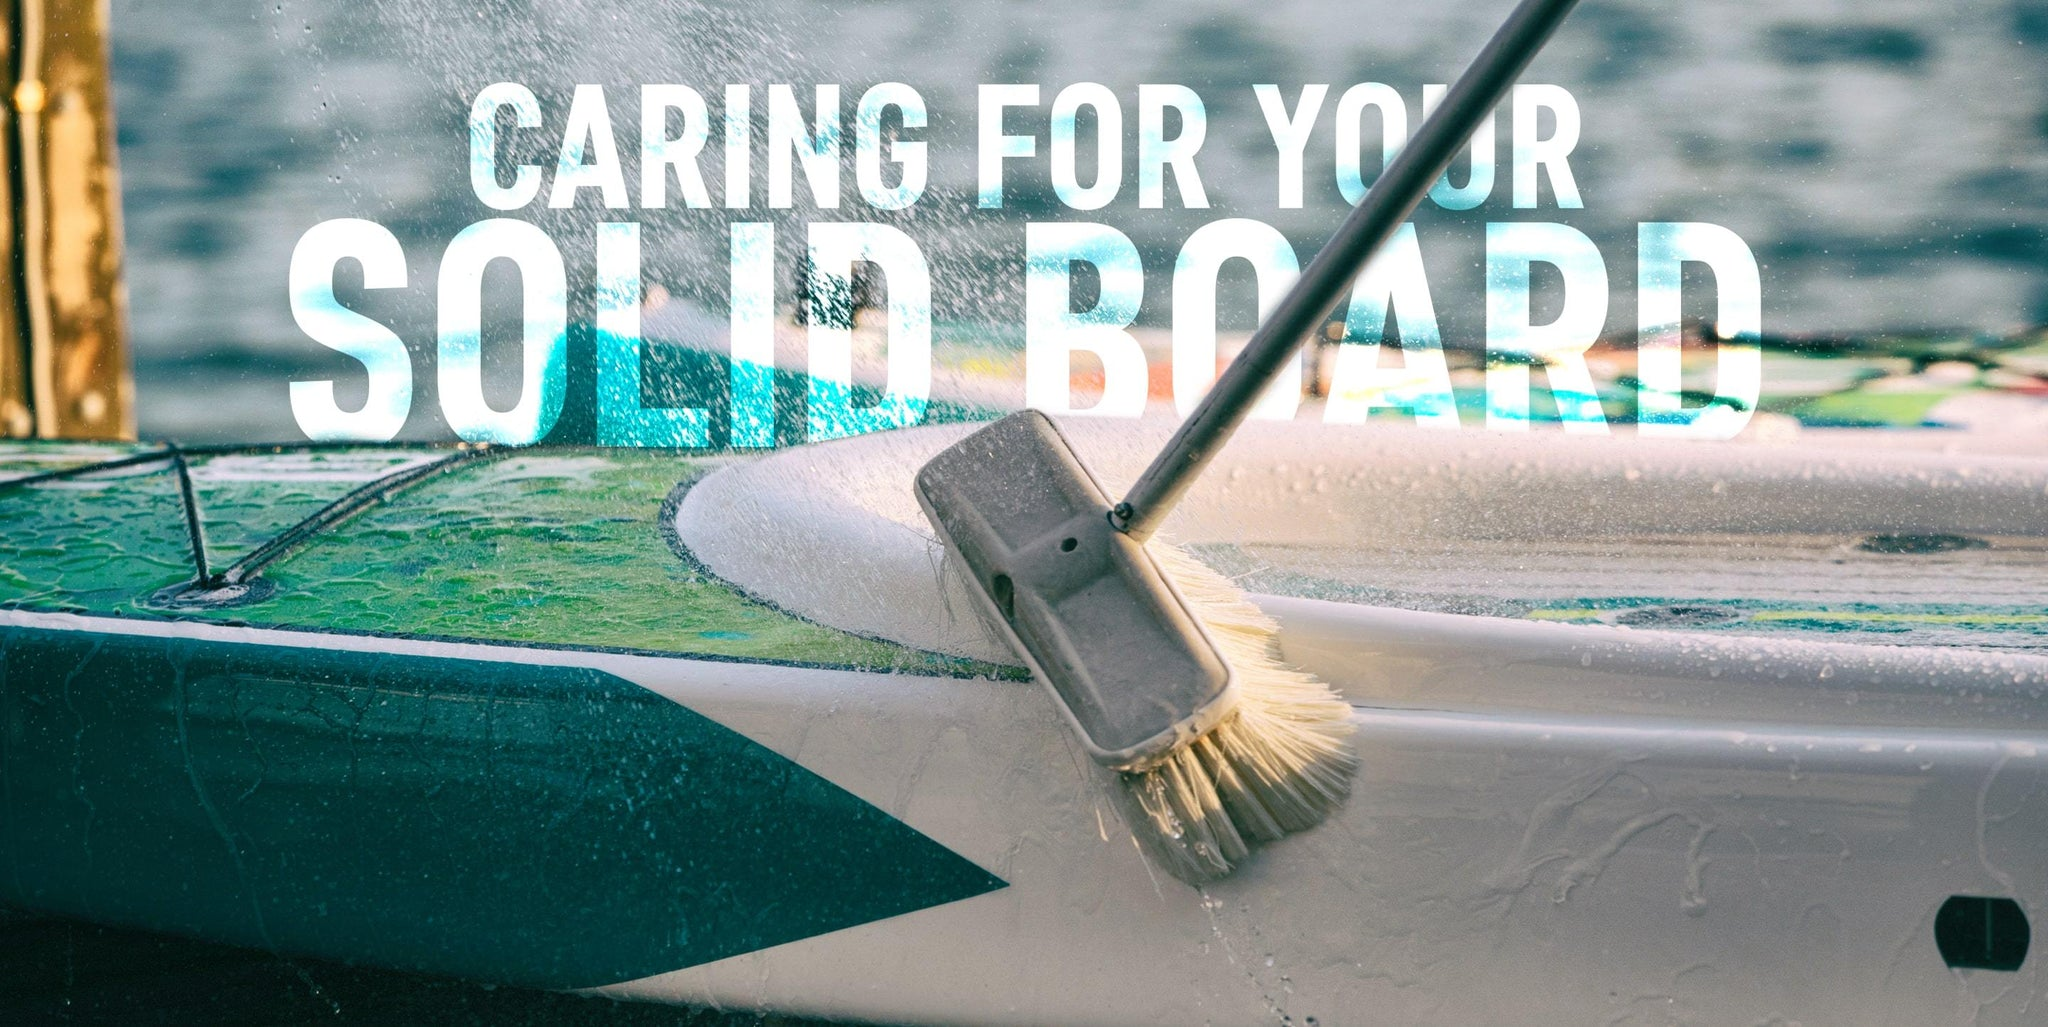 Long Live Paddle Boards: Caring For Your Solid Board